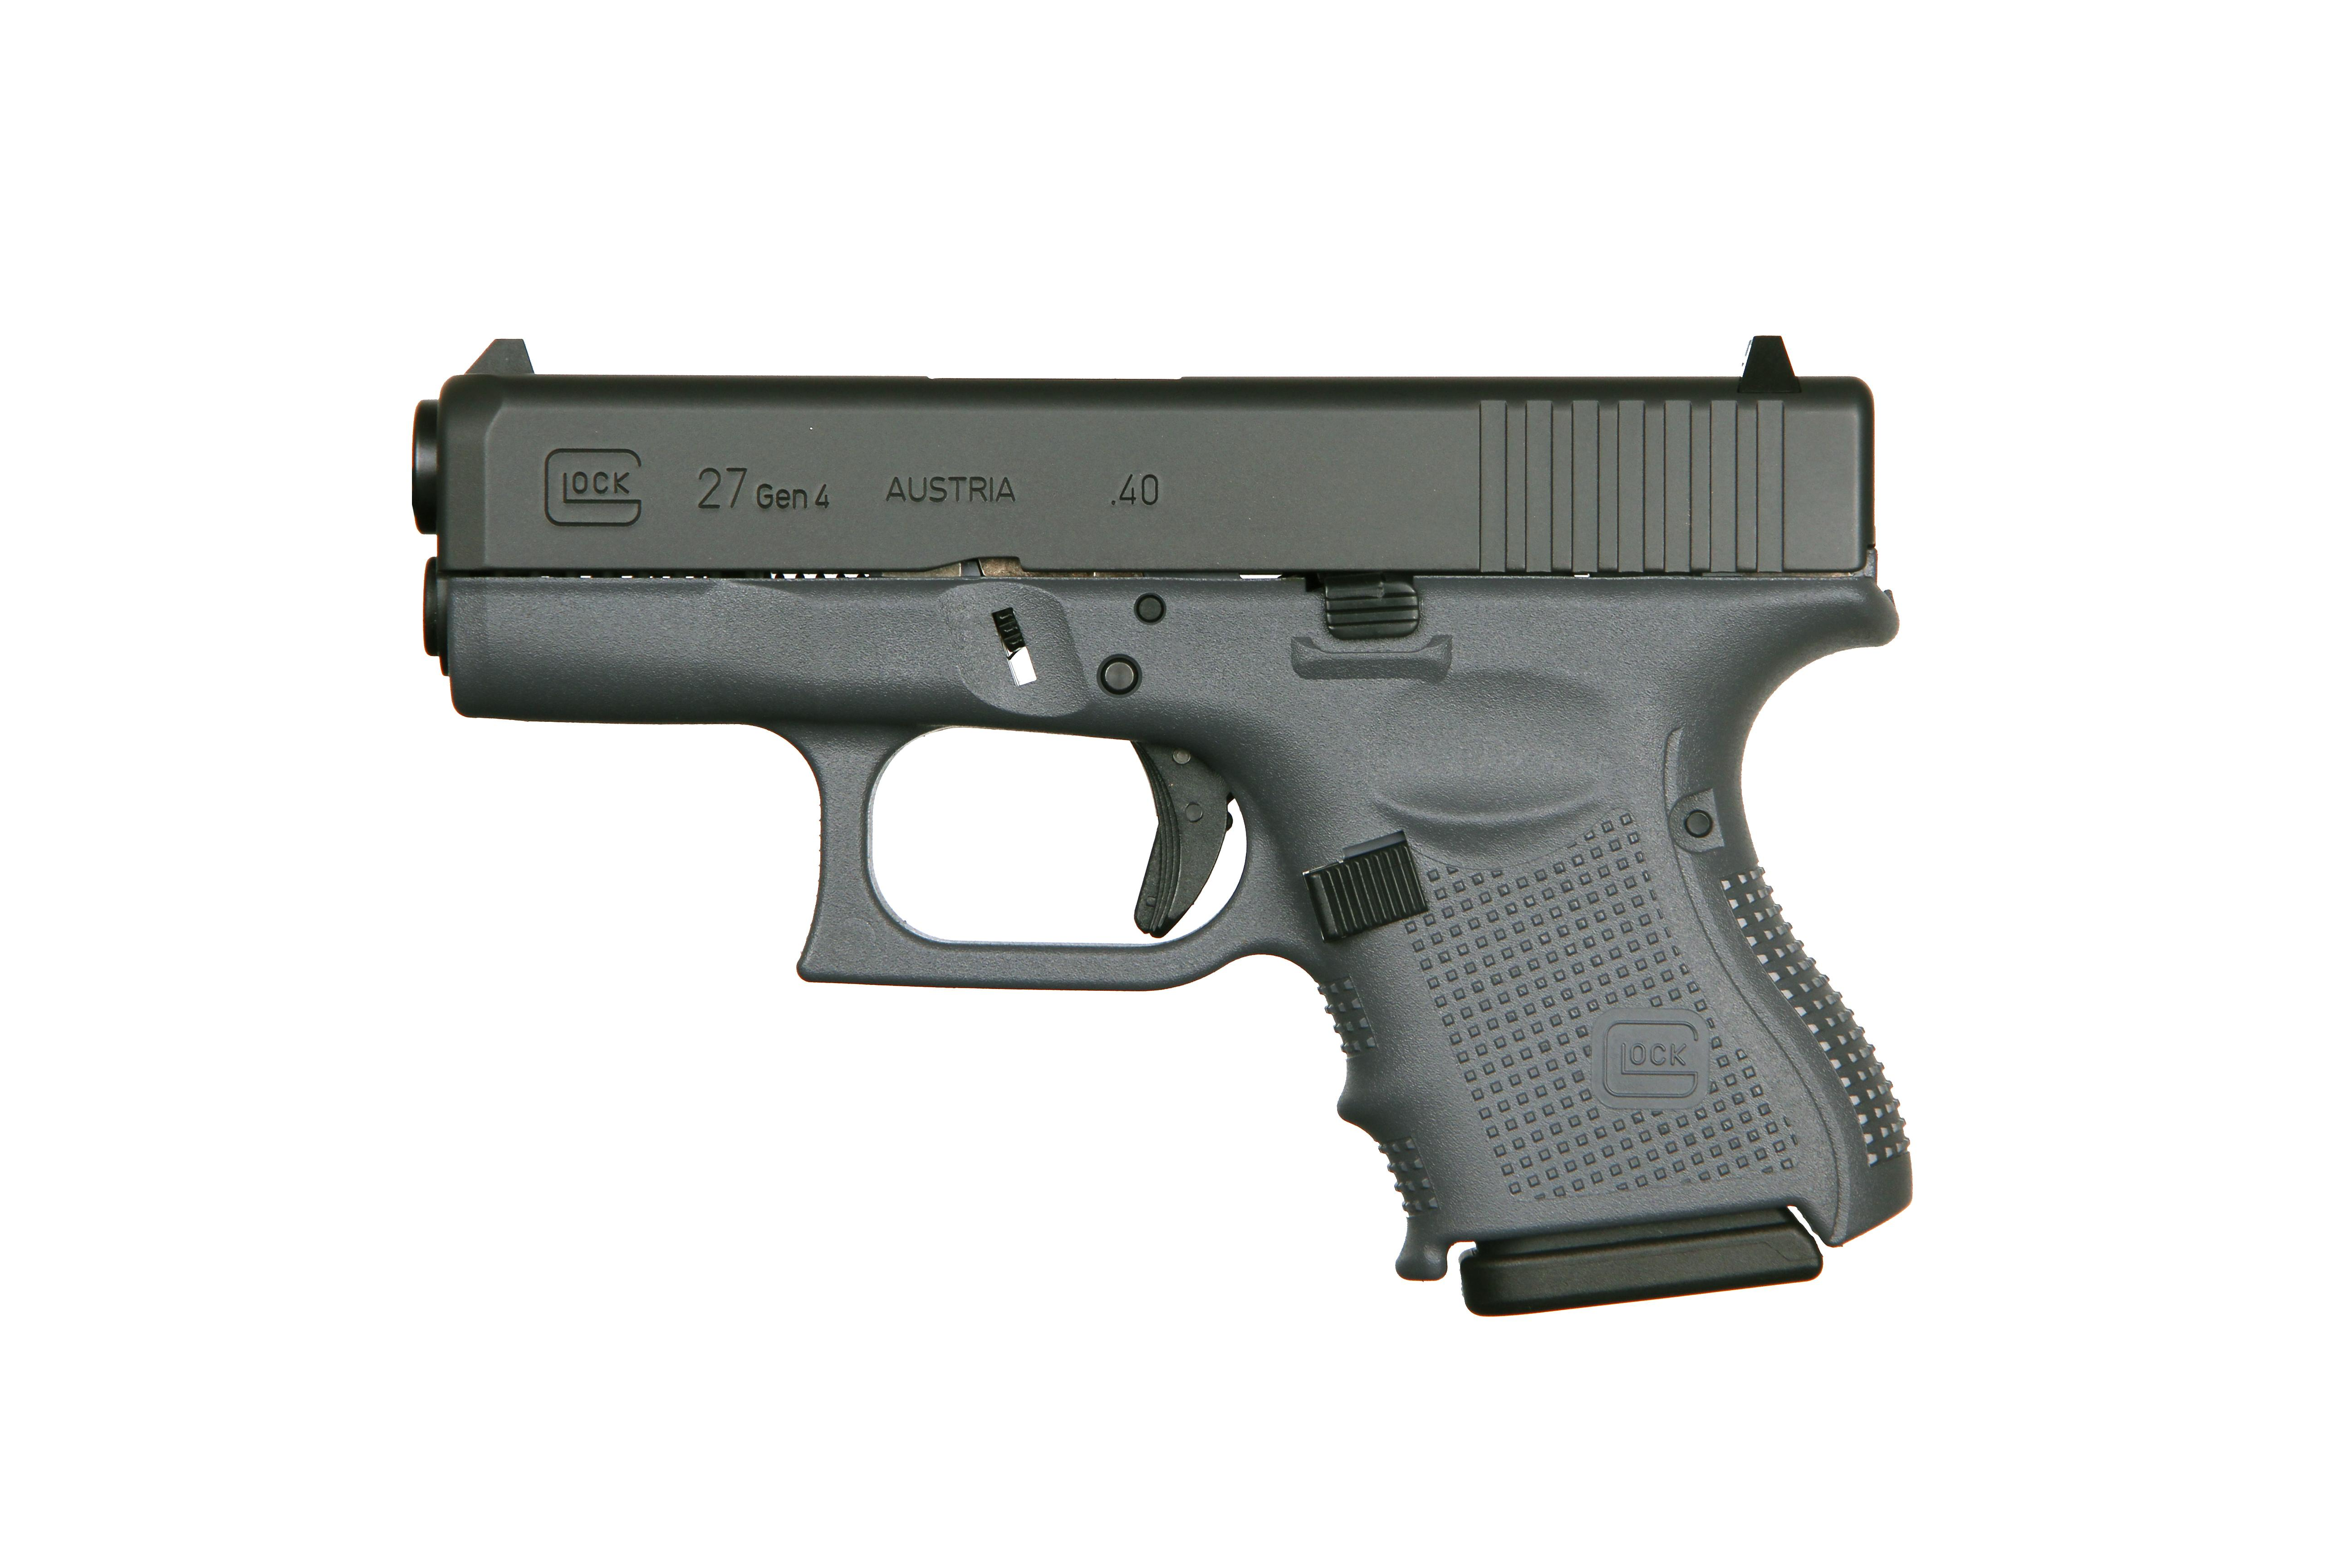 G27 G4 GRAY 40SW 9+1 3.46 FS - 3-9RD MAGS